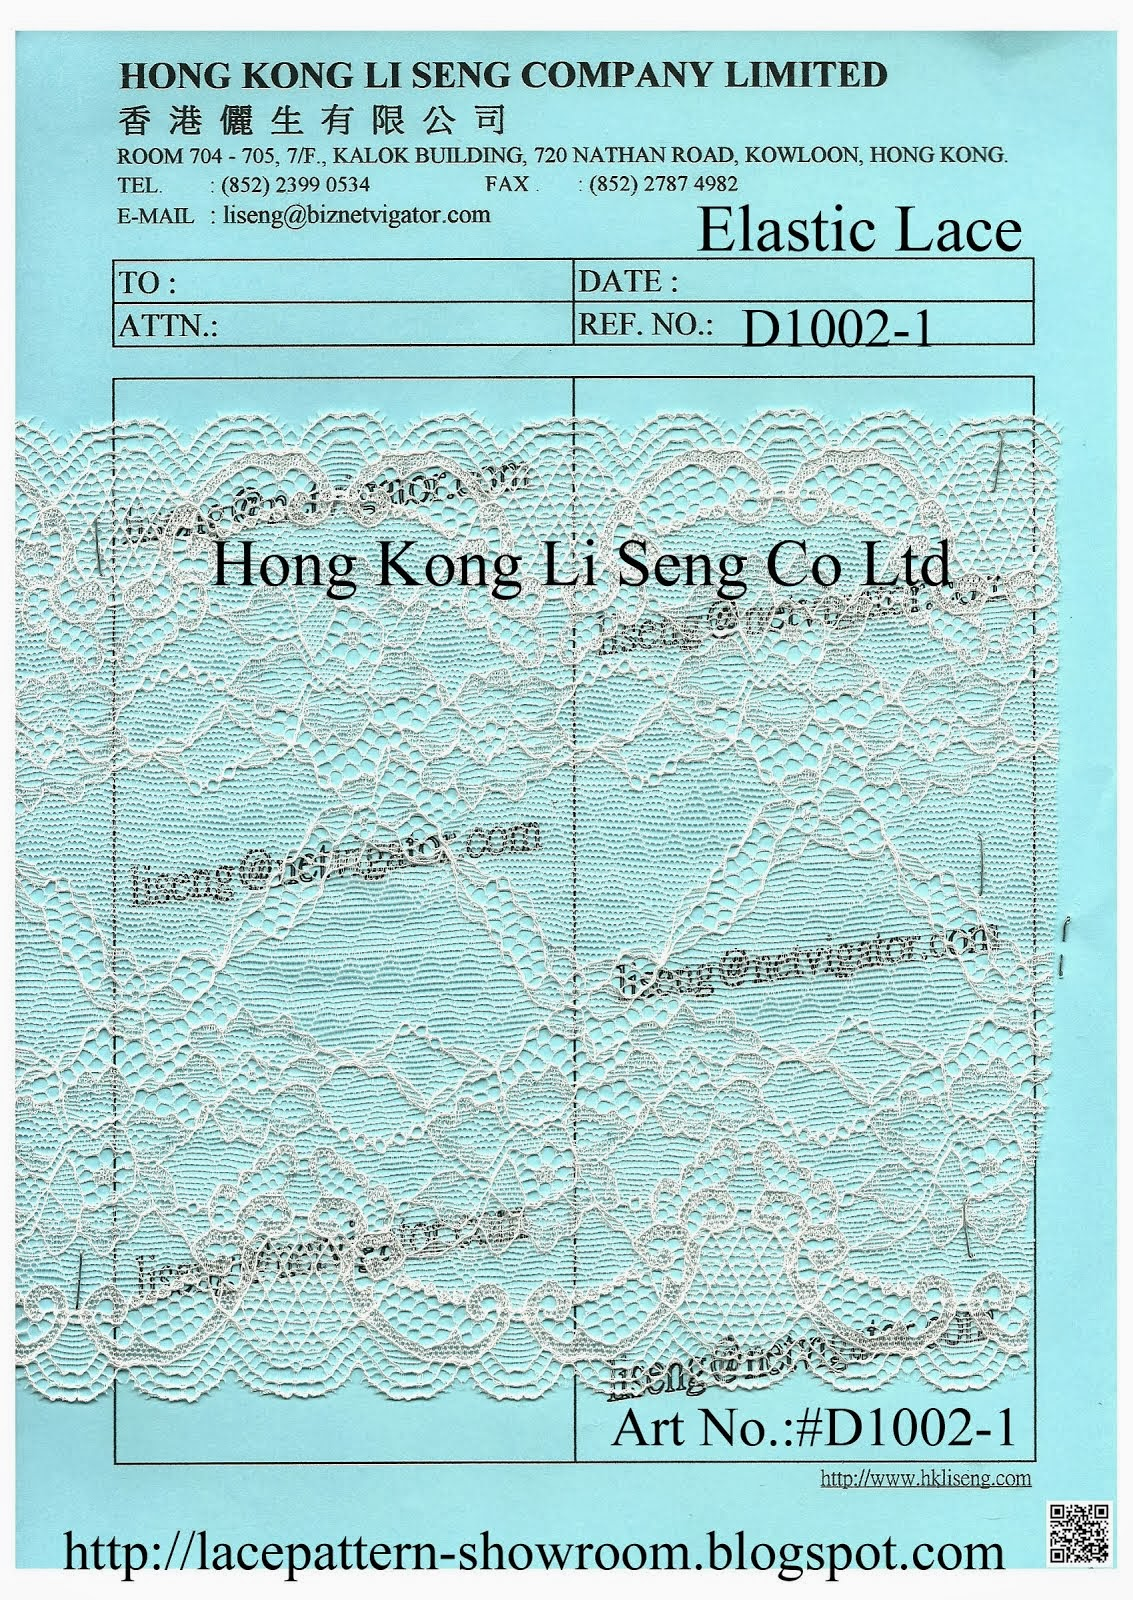 Elastic Lace Trims Manufacturer Wholesale and Supplier - Hong Kong Li Seng Co Ltd